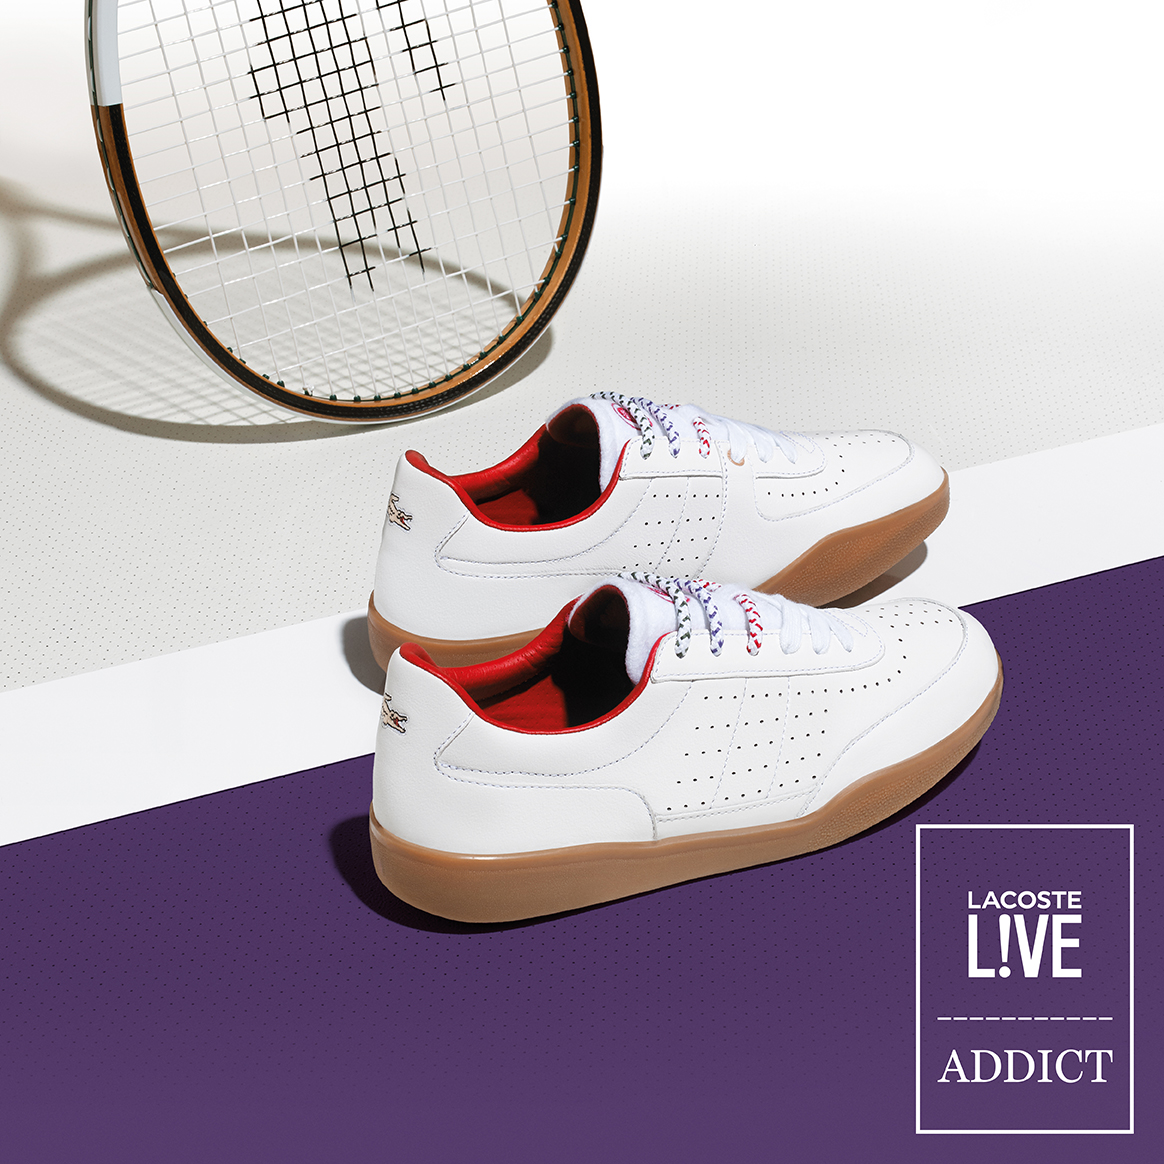 lacoste-live-addict-miami-sneakers2